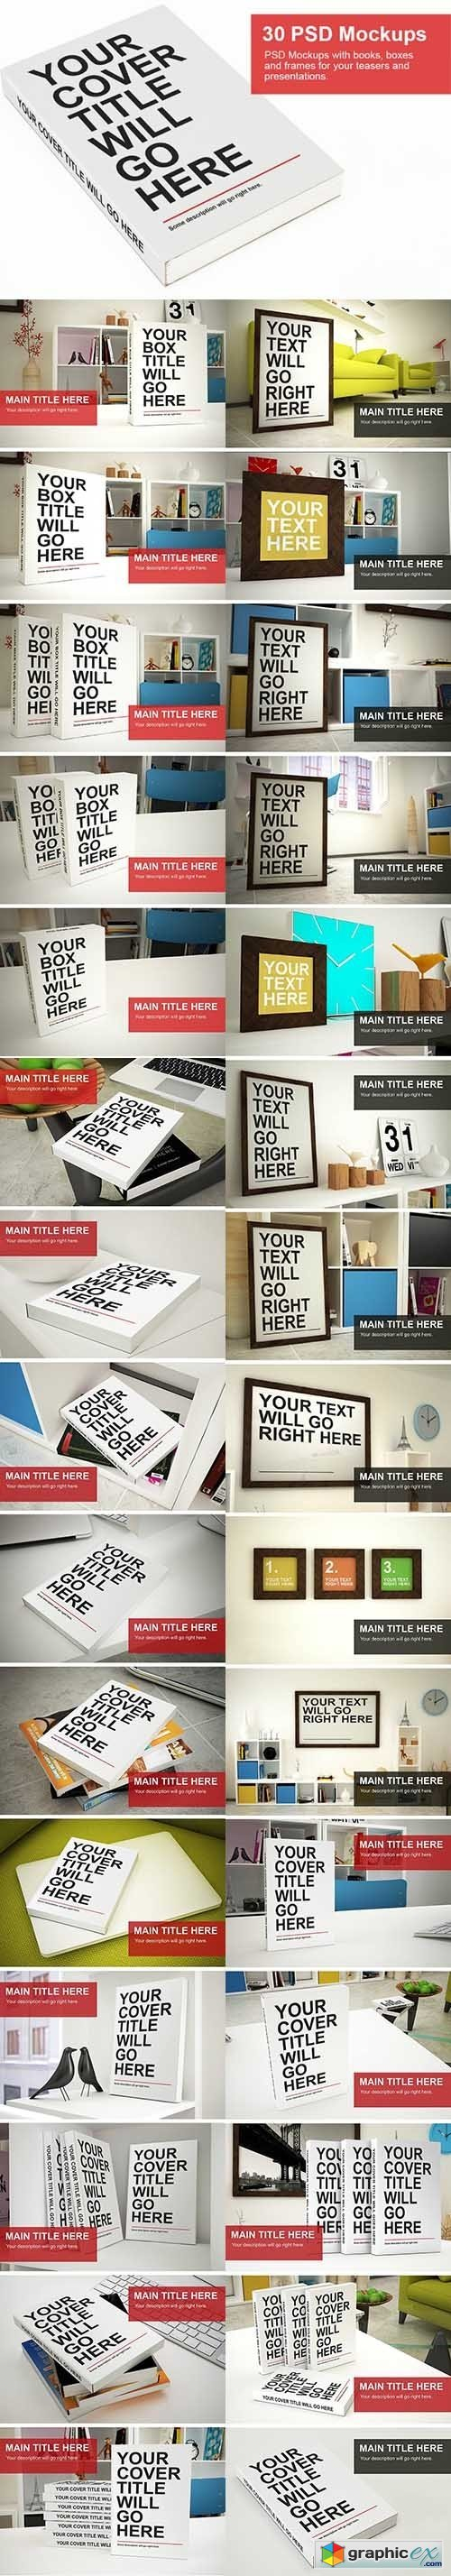 30 PSD Mock-Ups - Books Boxes and Frames